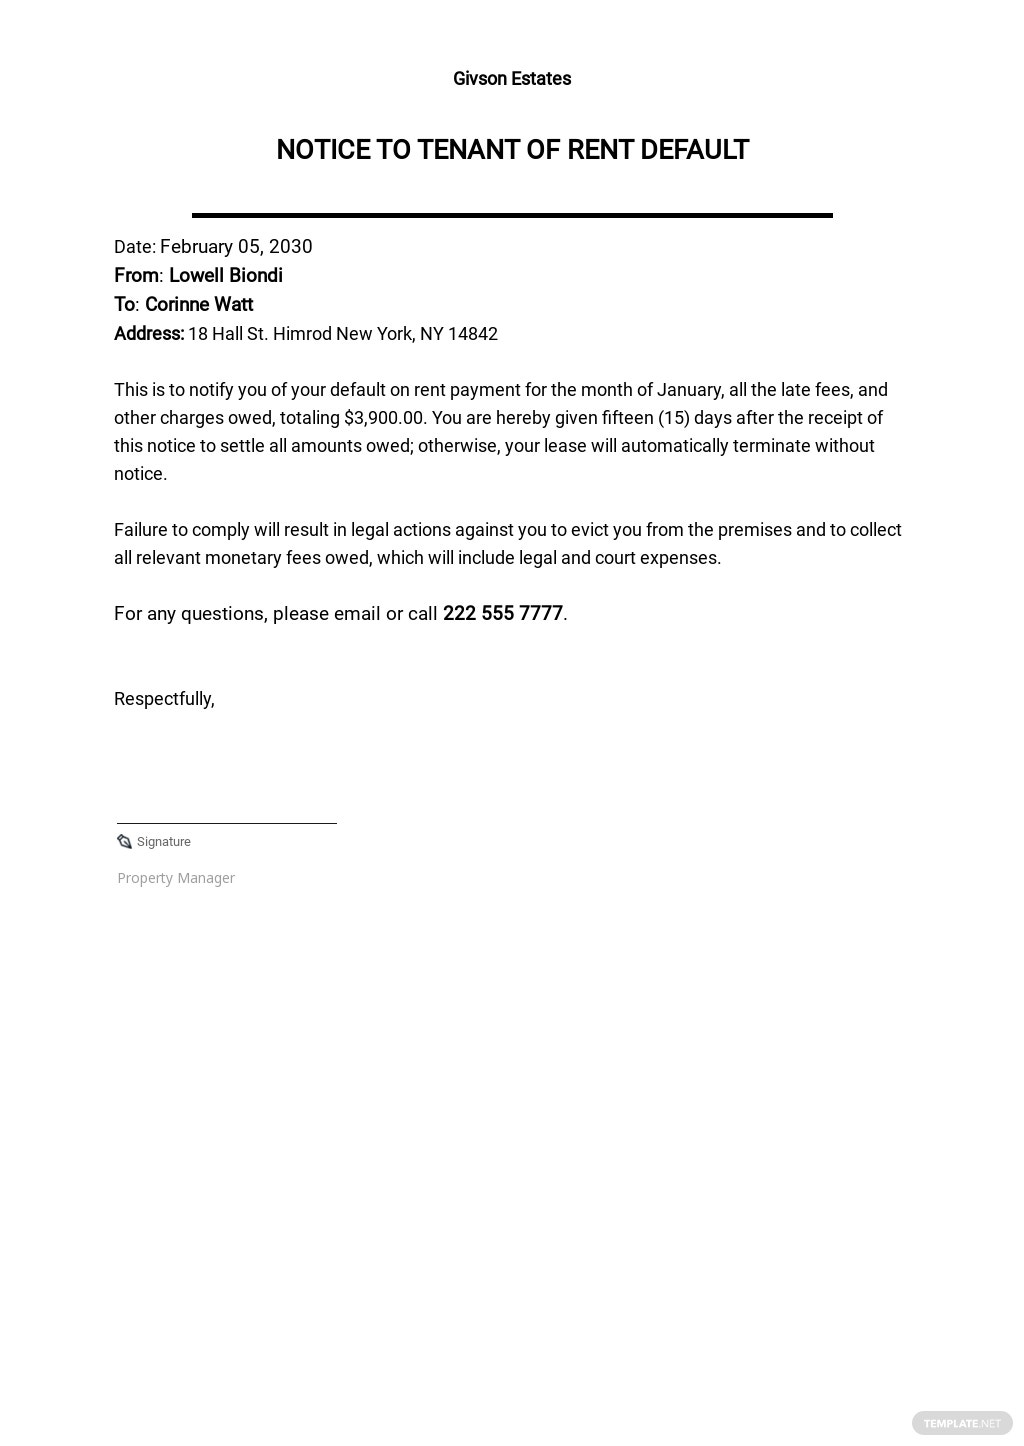 Free Notice To Tenant of Rent Default Template.jpe